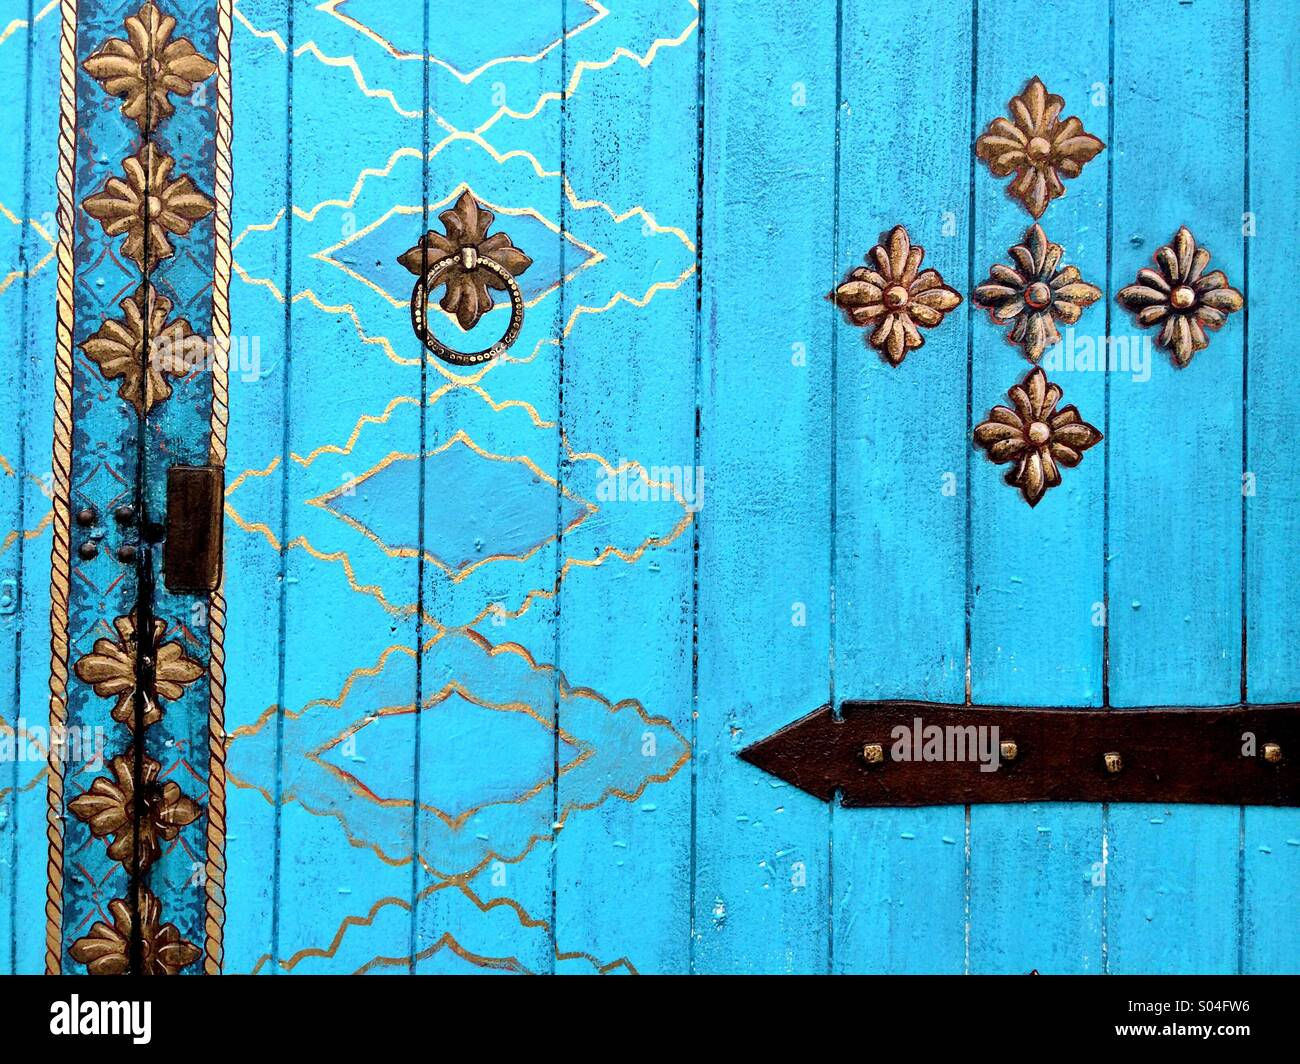 Blue painted door in the Funk Zone Arts District of Santa Barbara, California - Stock Image